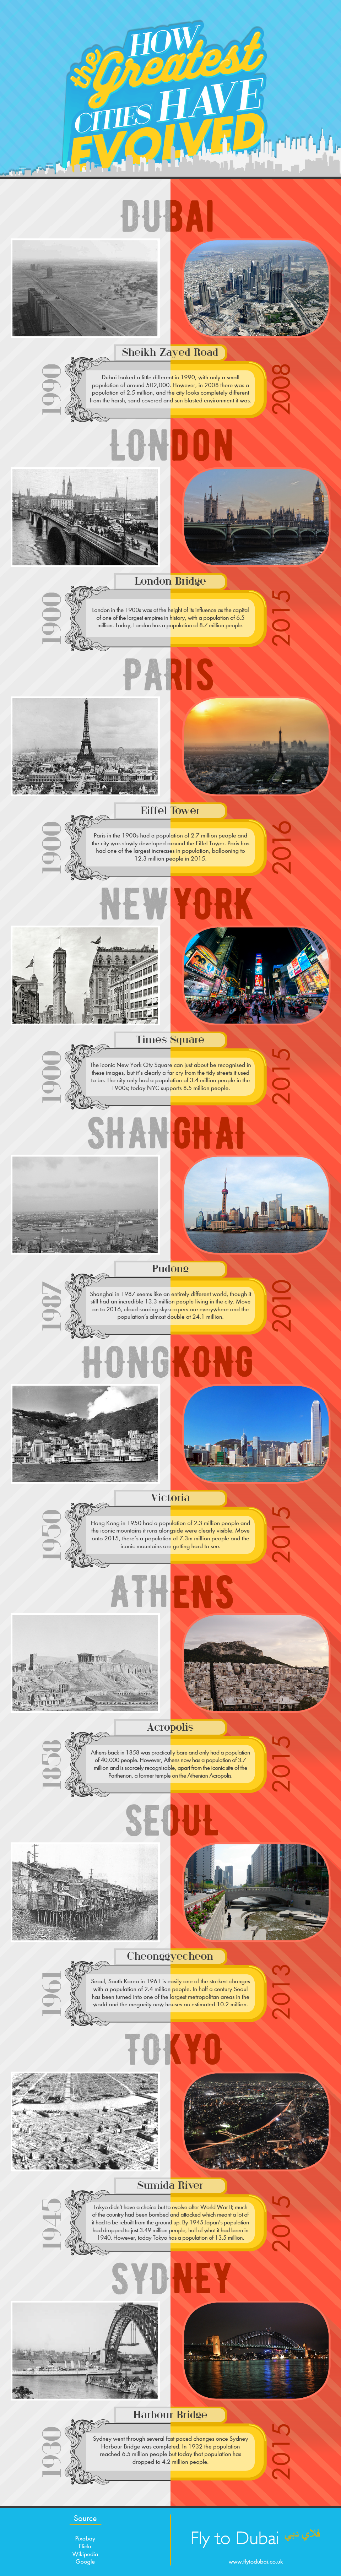 How the Greatest Cities Have Evolved #Infographic